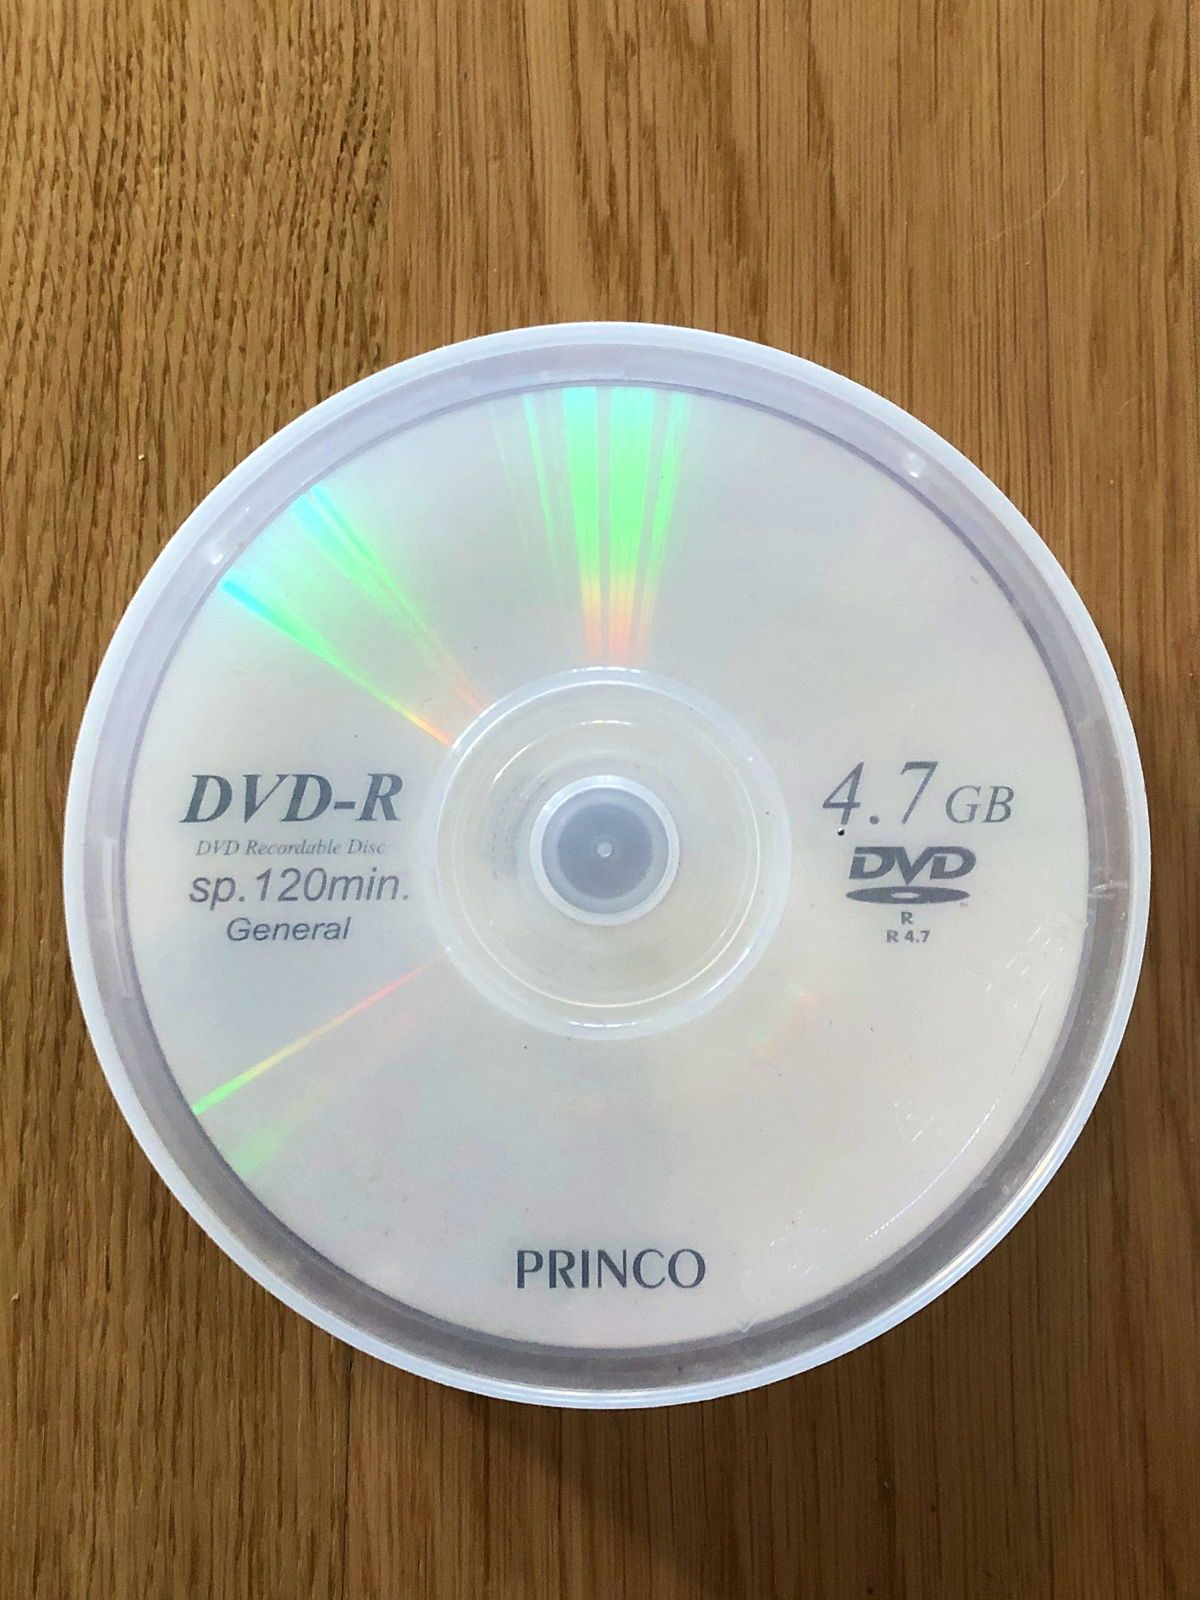 Vends DVD vierges réinscriptibles 4,7 GB